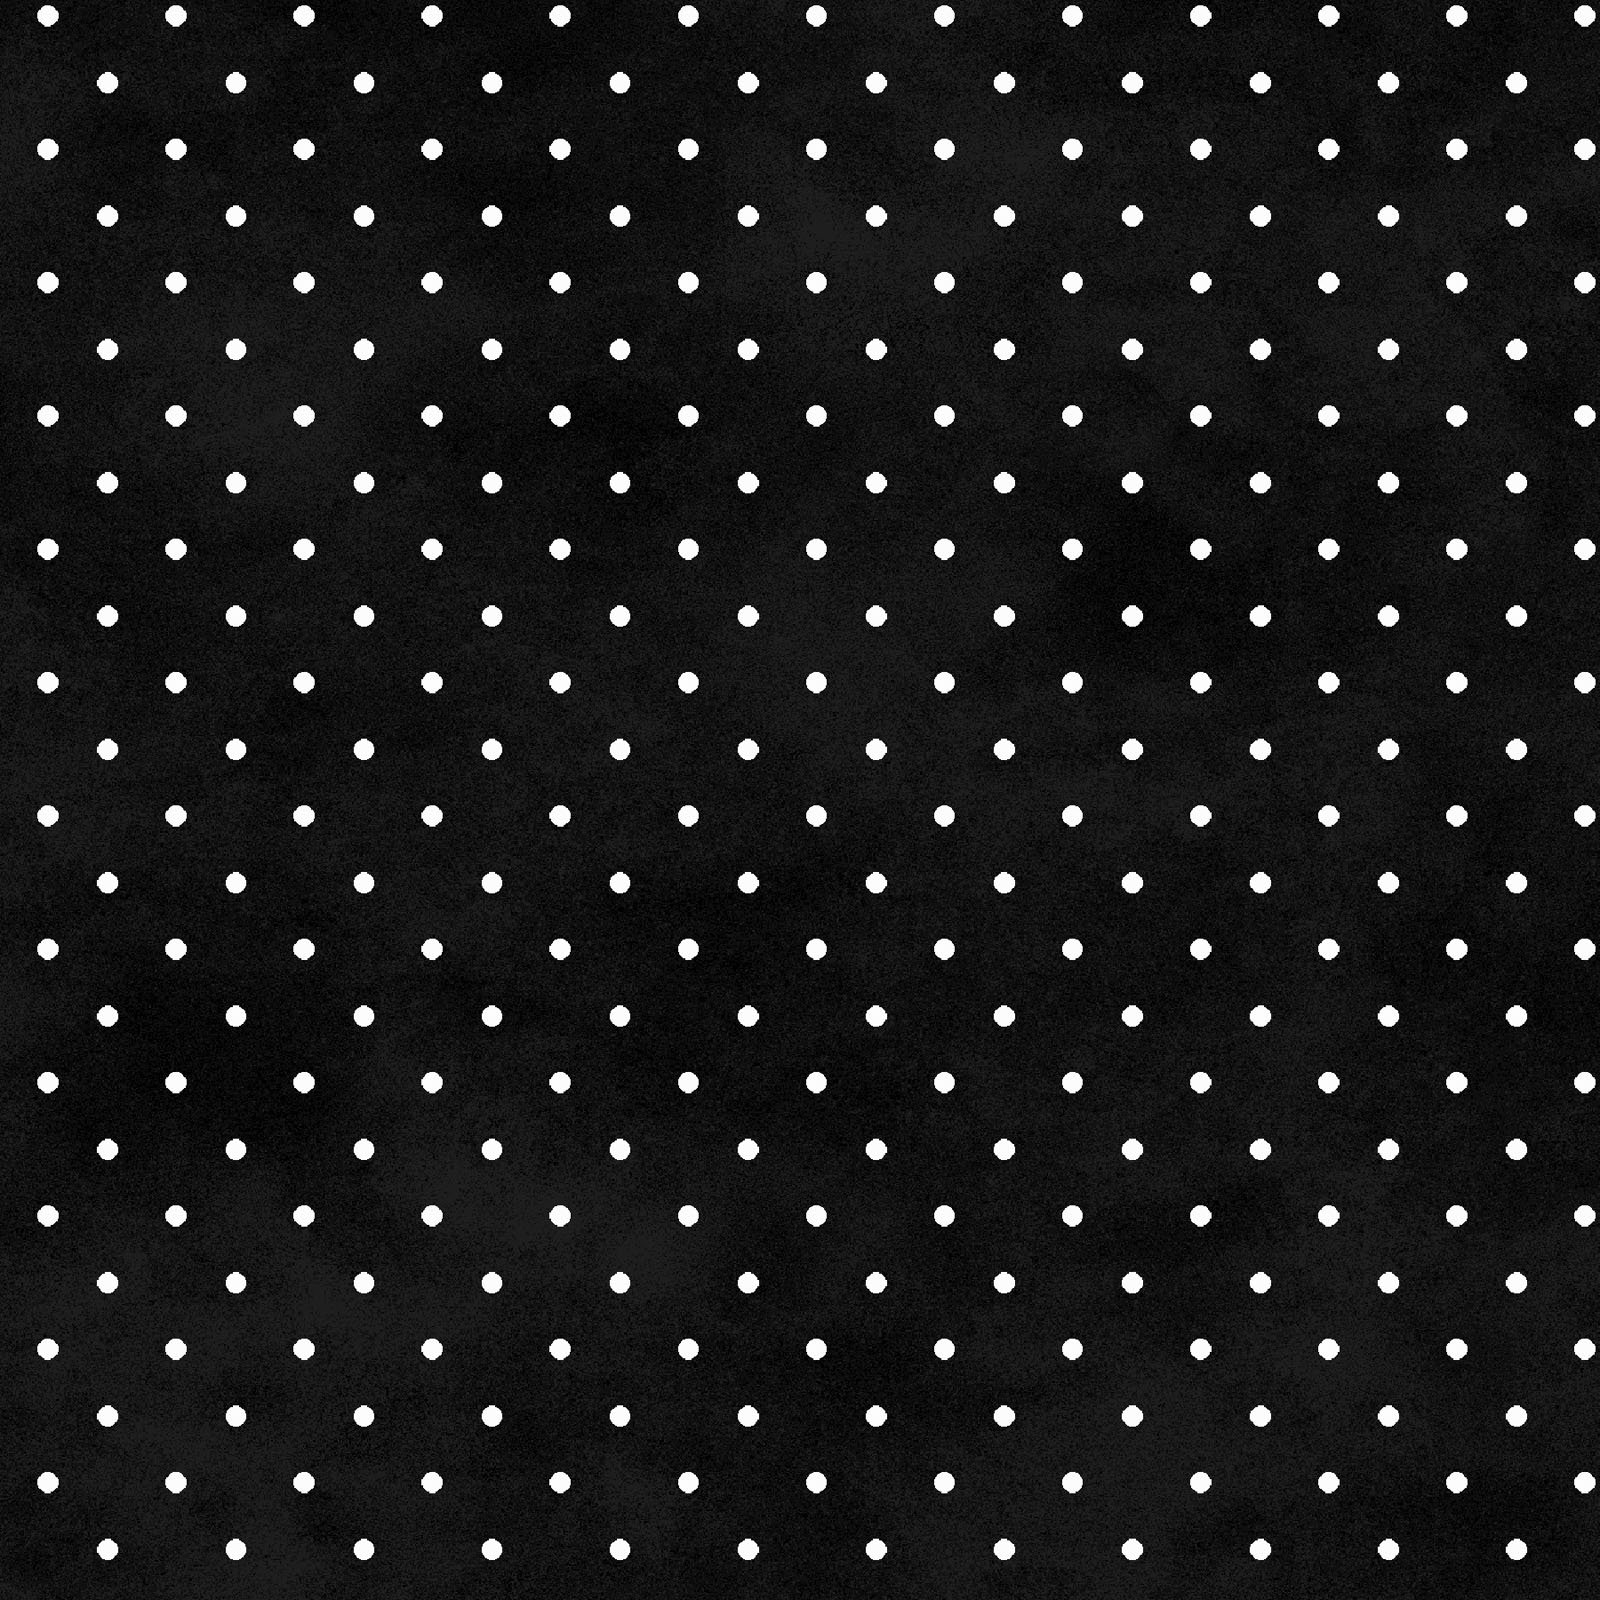 EESC-609 J - BEAUTIFUL BASICS BY MAYWOOD STUDIO CLASSIC DOT RICH BLACK